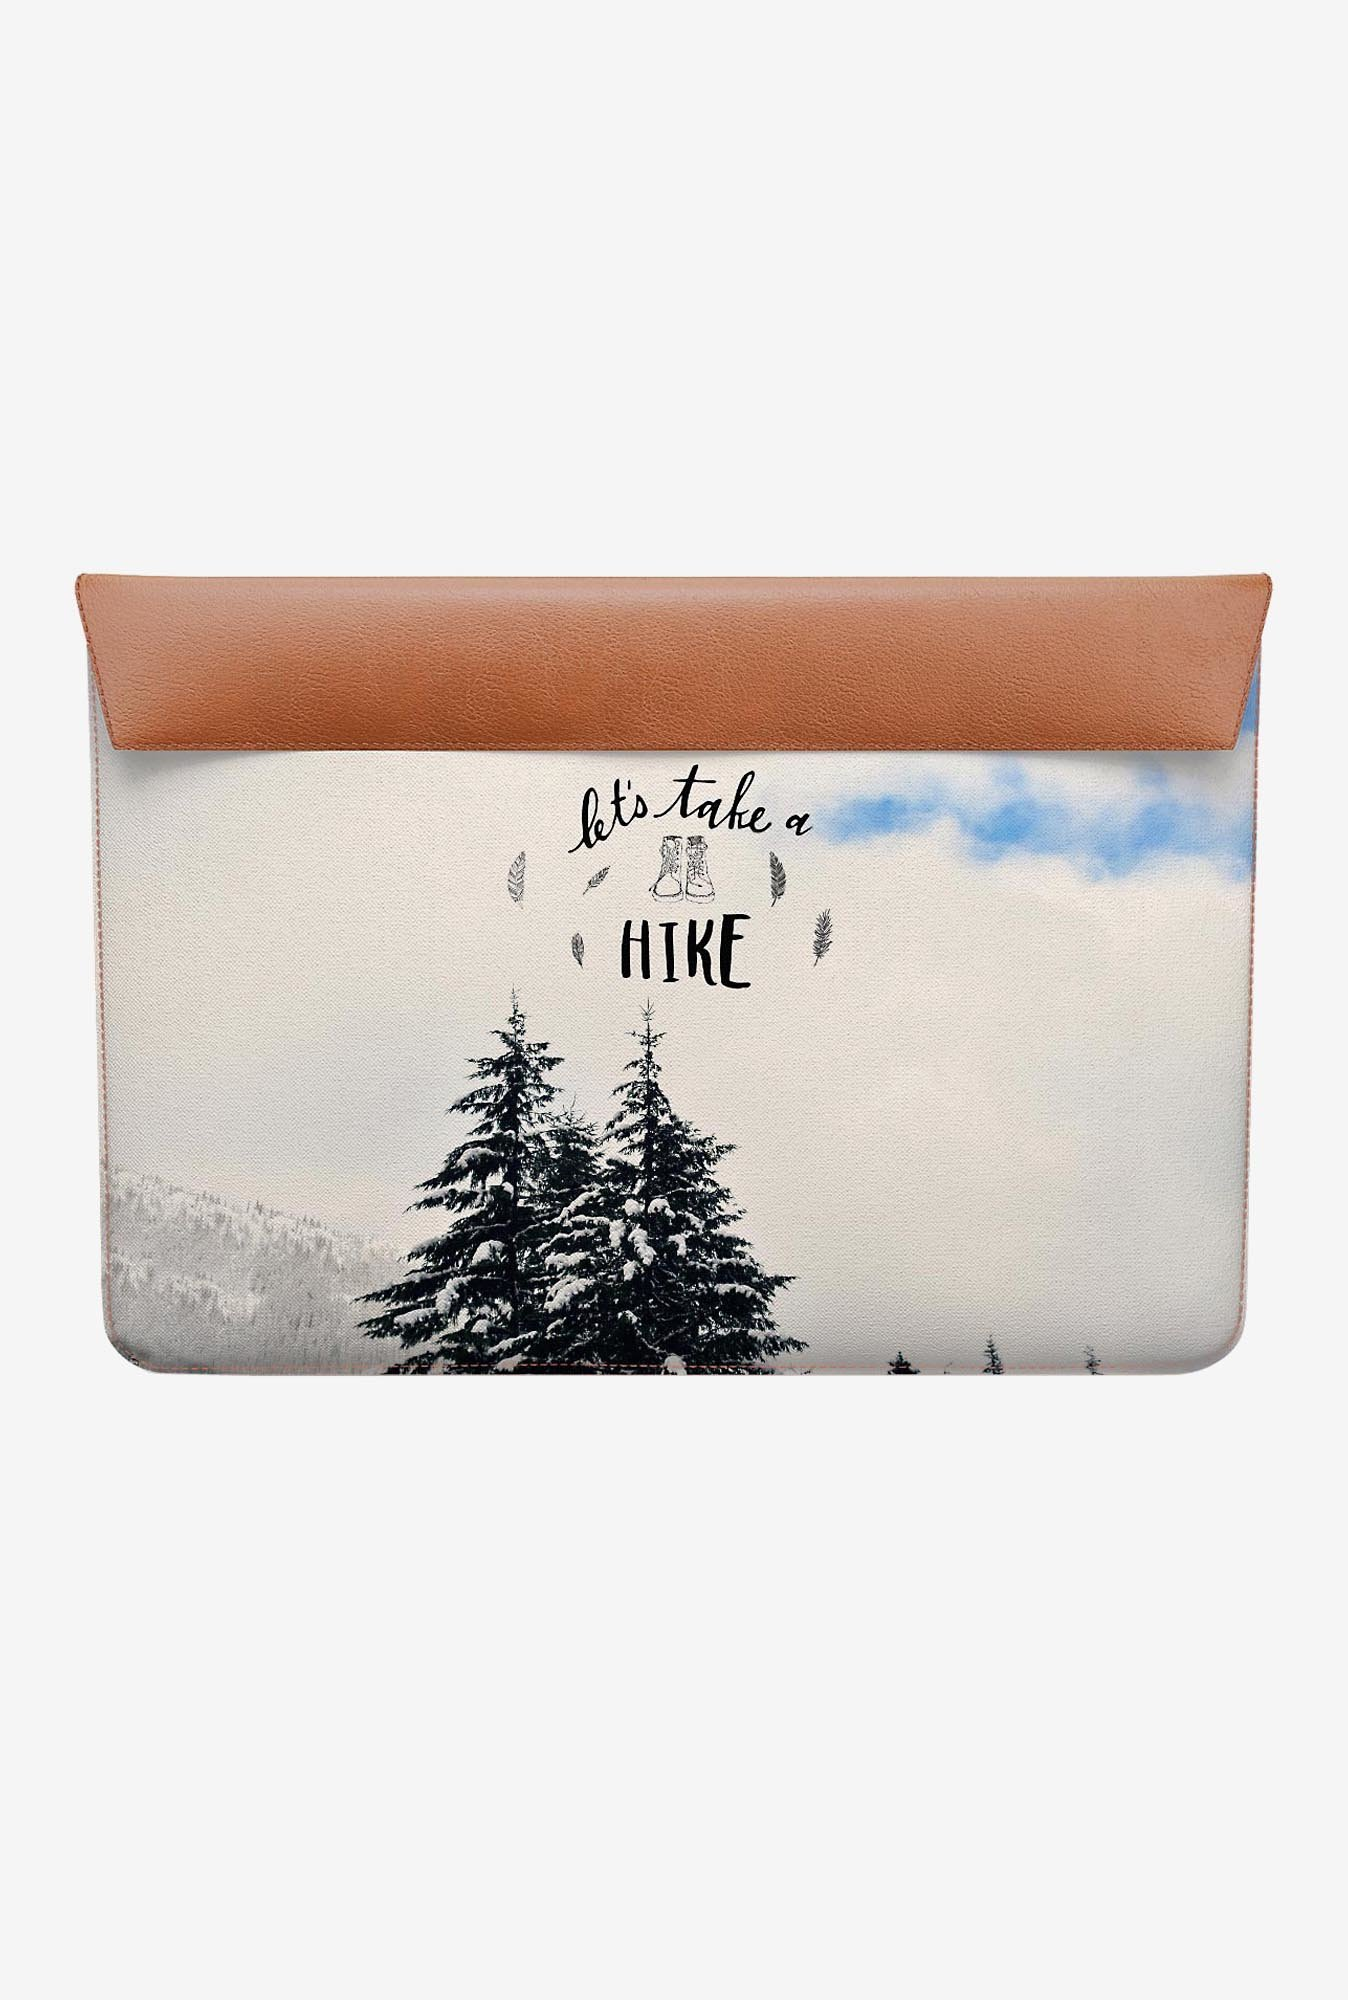 DailyObjects Take A Hike MacBook 12 Envelope Sleeve